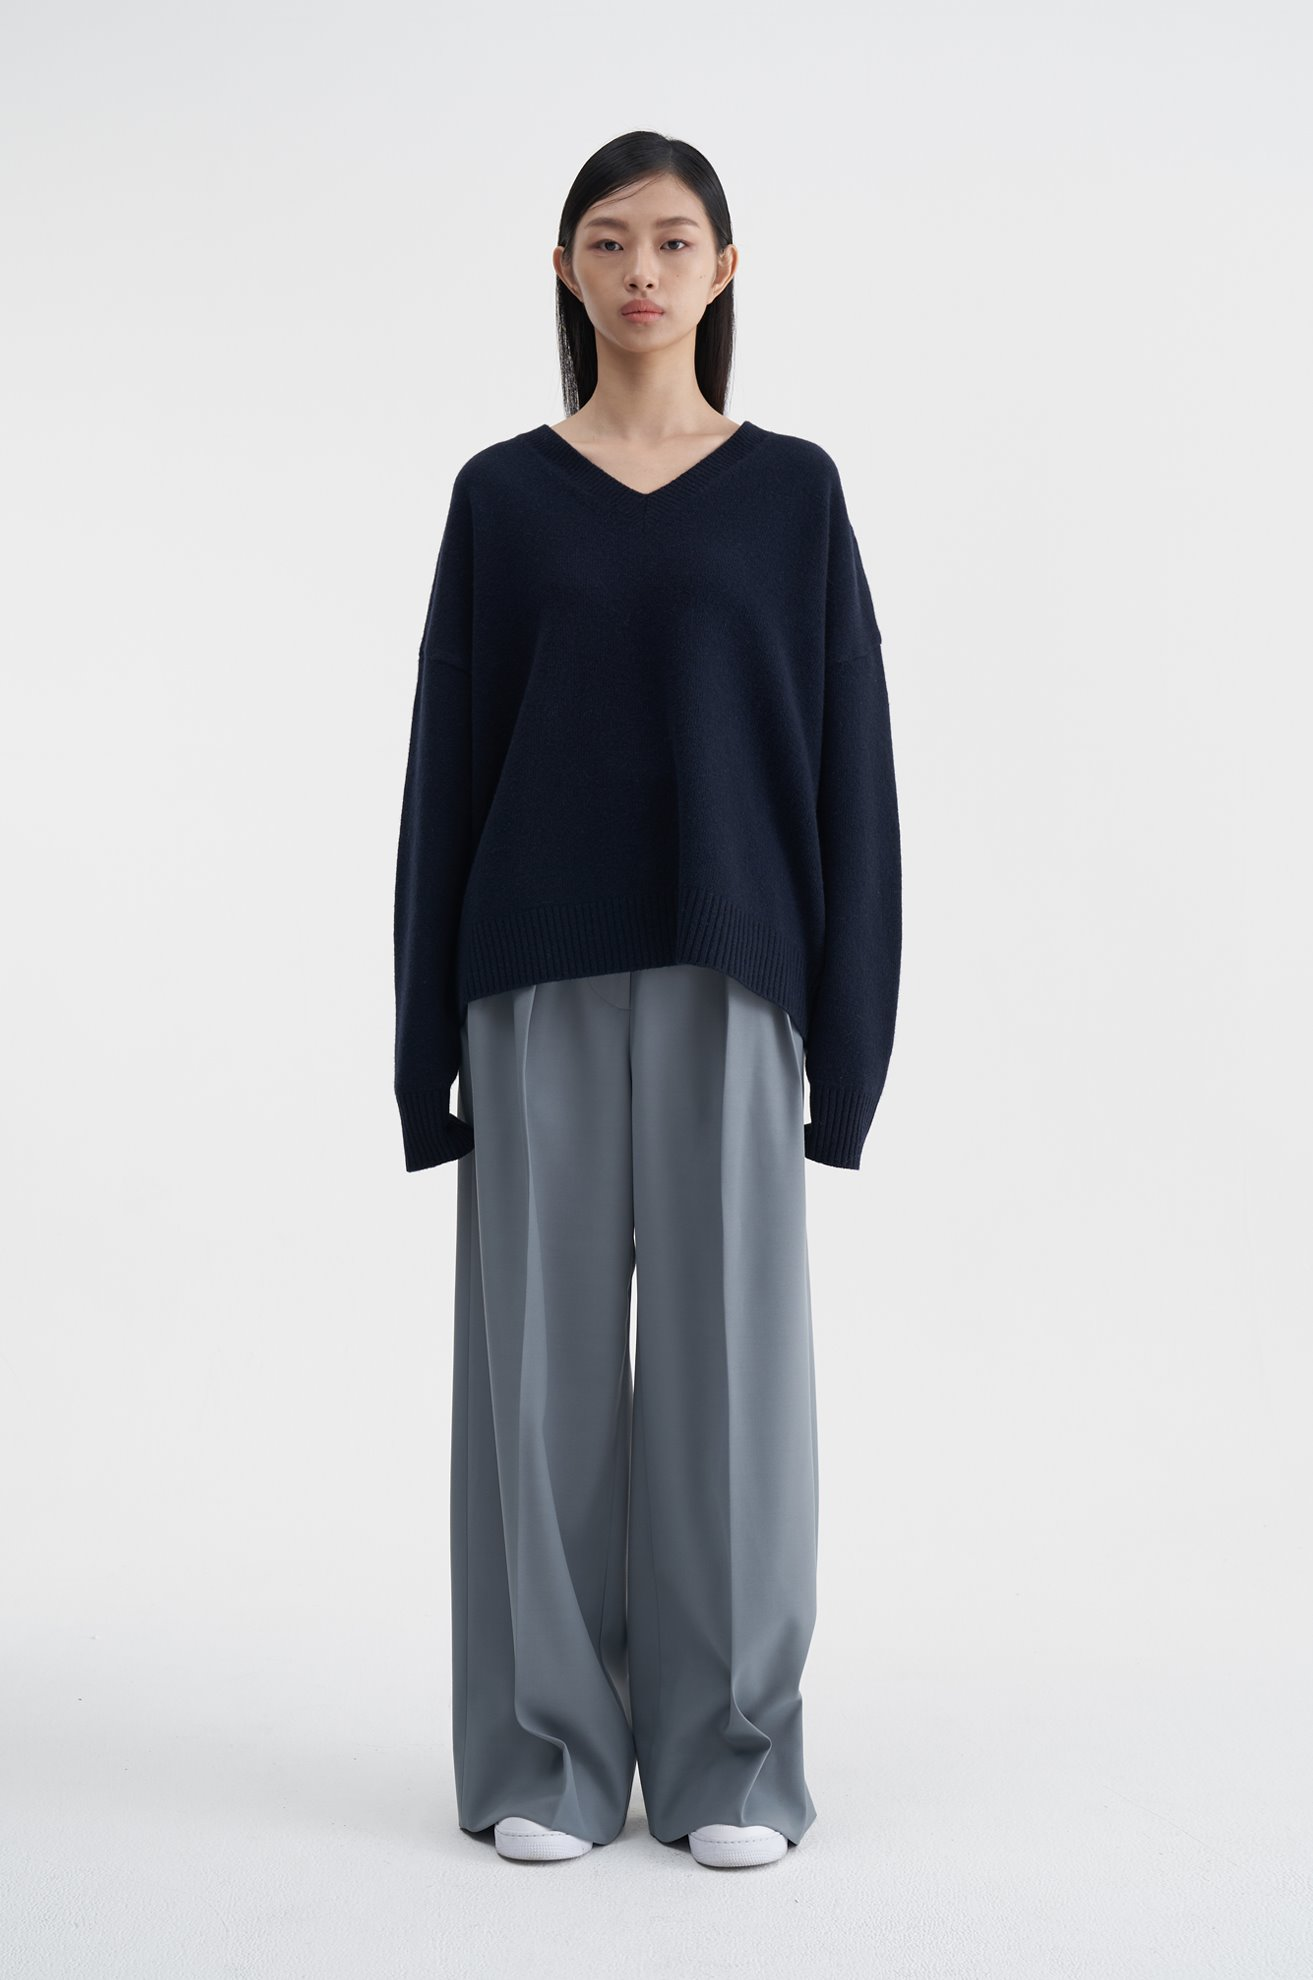 Cashmere Vneck Sweater (NAVY)ATELIER EDITION